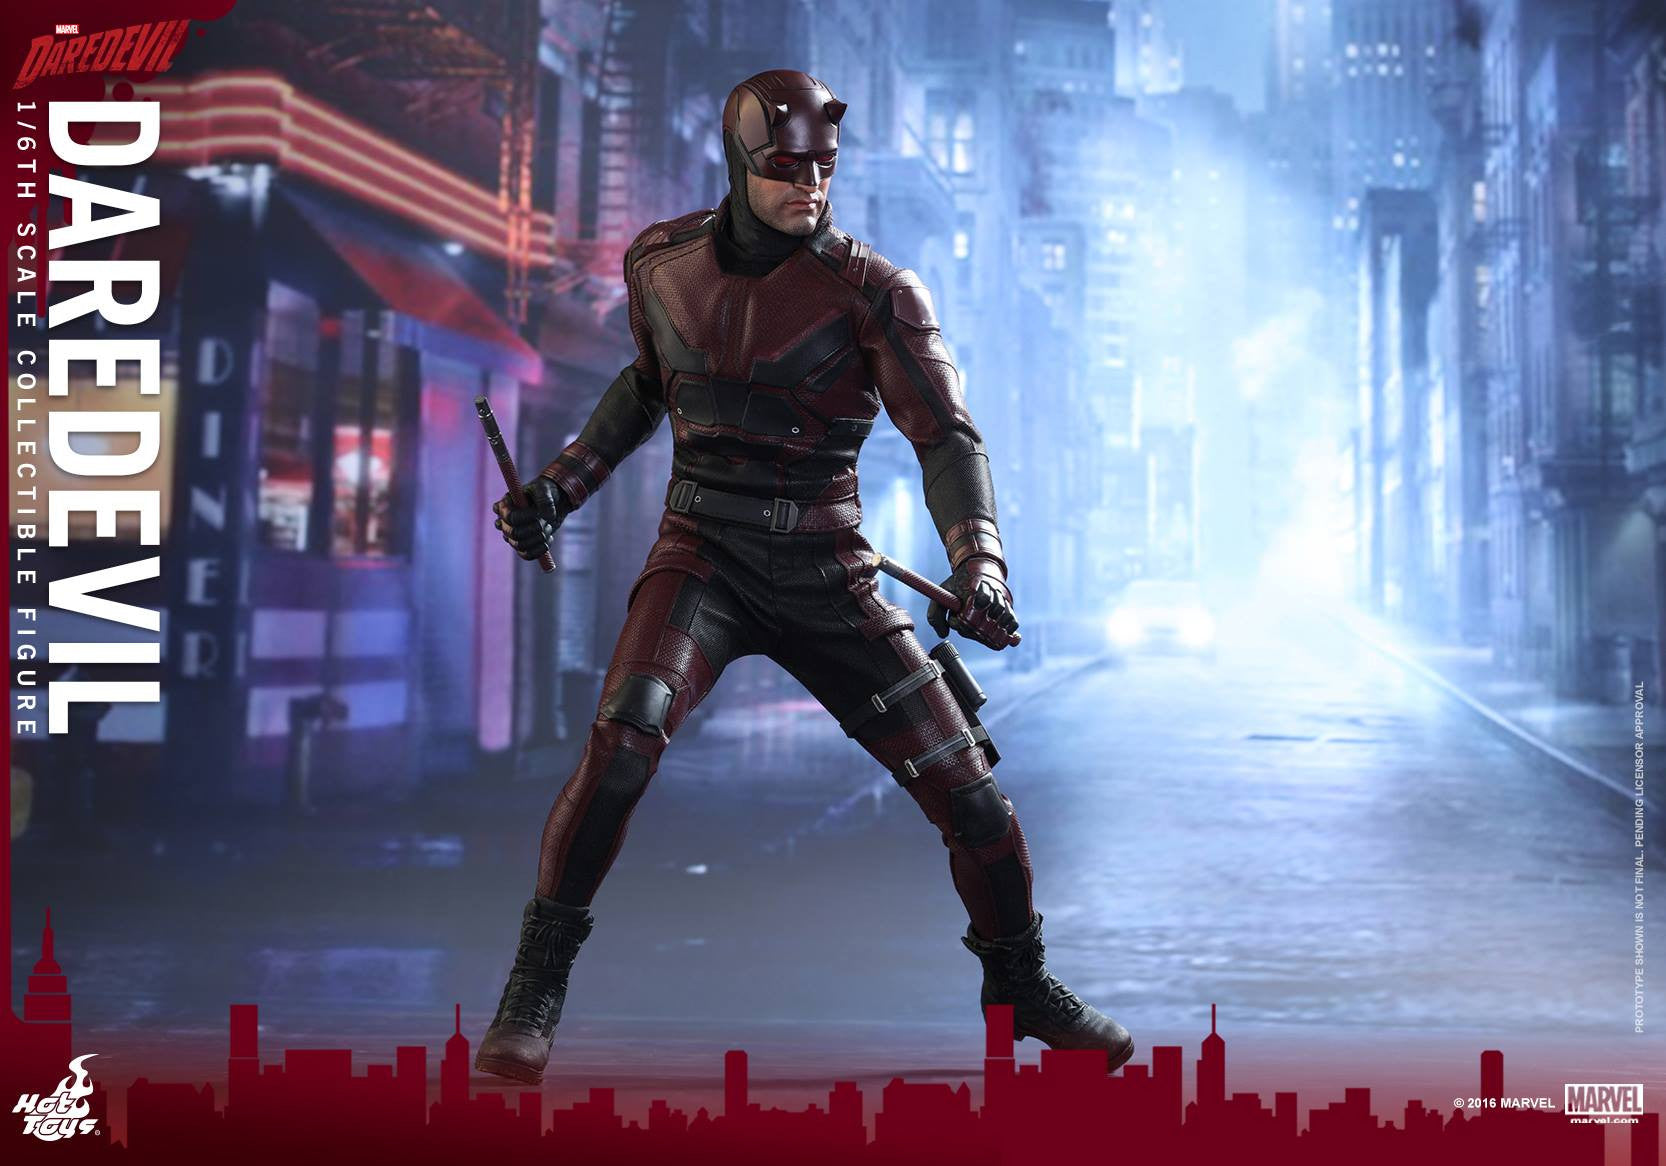 Hot Toys - TMS003 - Marvel's Daredevil - Daredevil - Marvelous Toys - 13